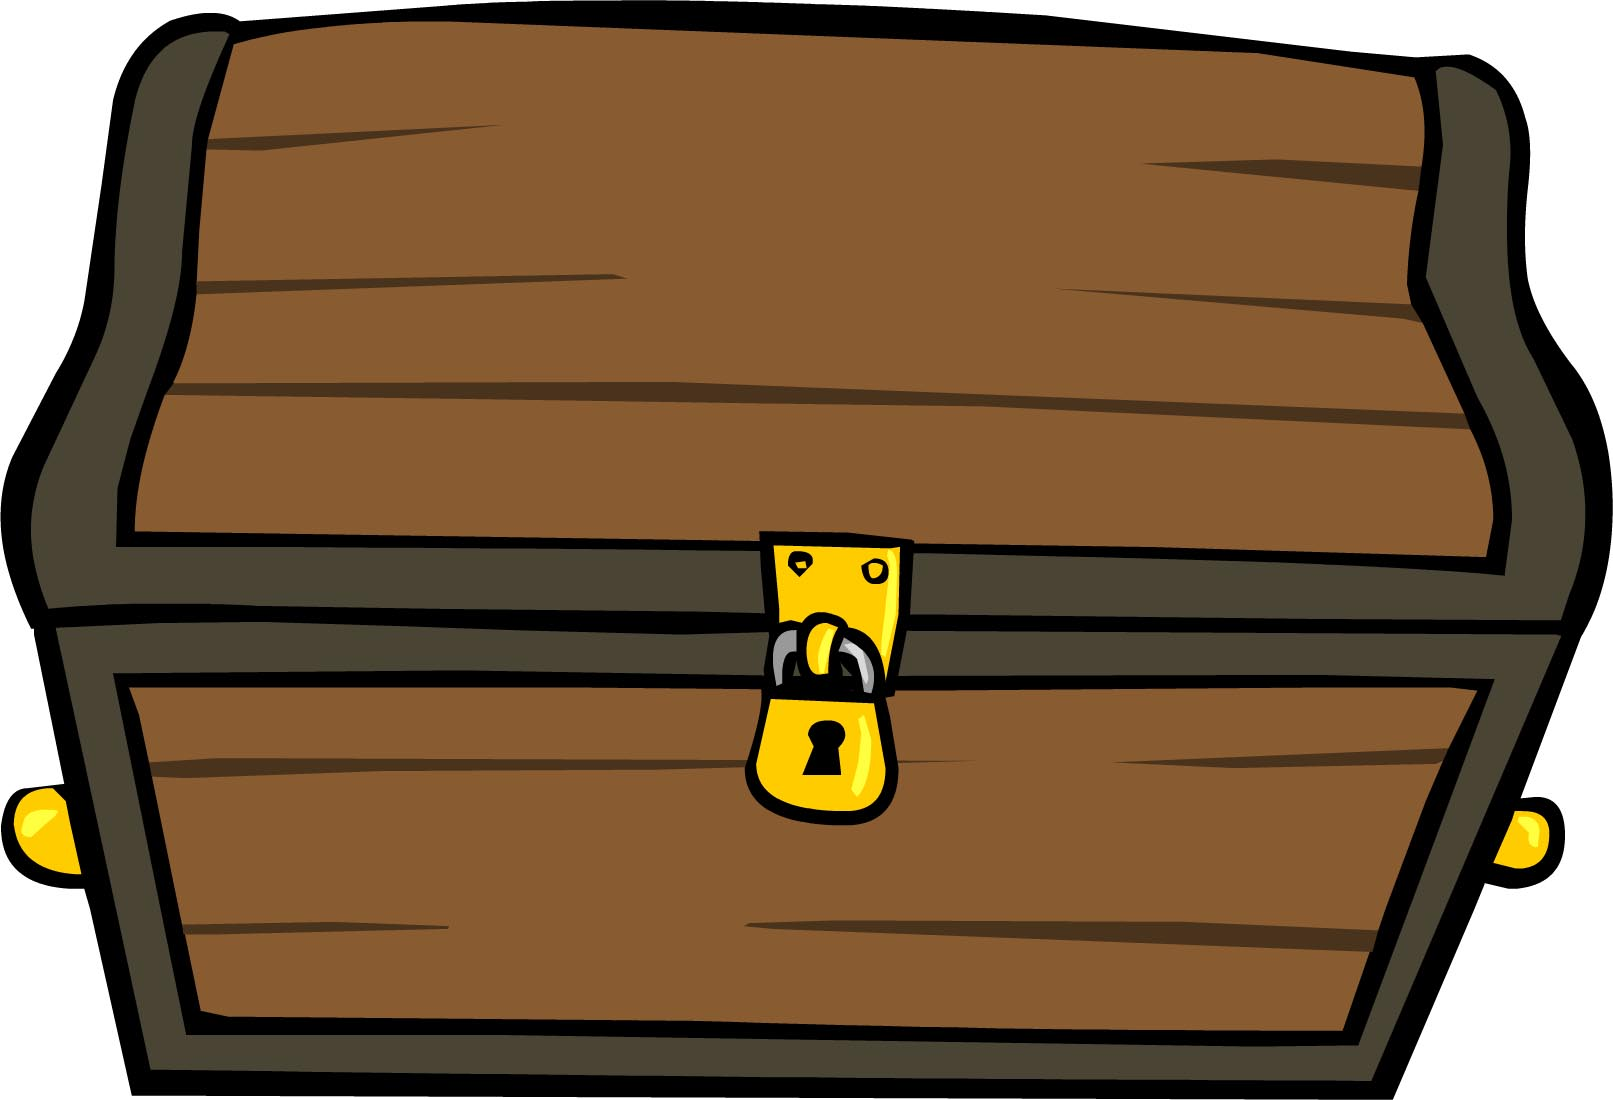 Treasure Chest Clipart with Lock - Clipart1001 - Free Cliparts png transparent download